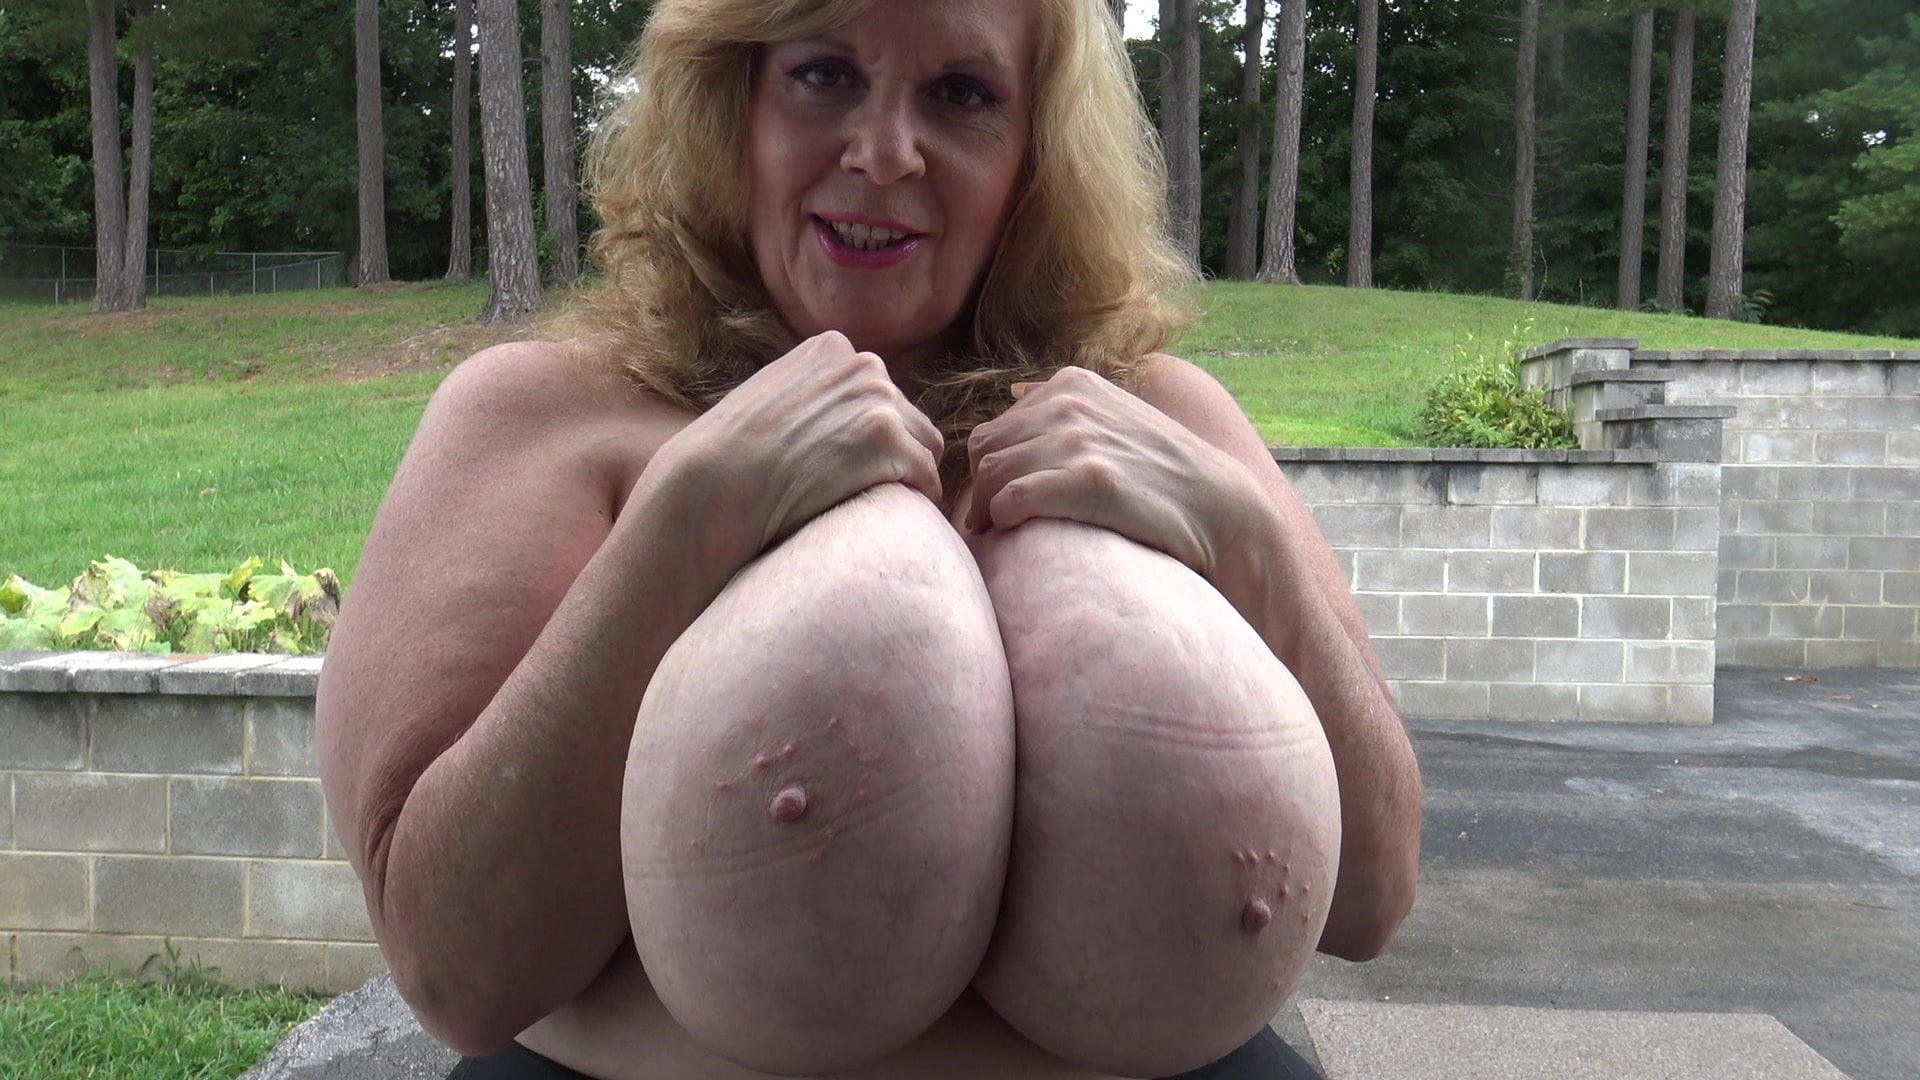 Legal huge breasted monster butts granny